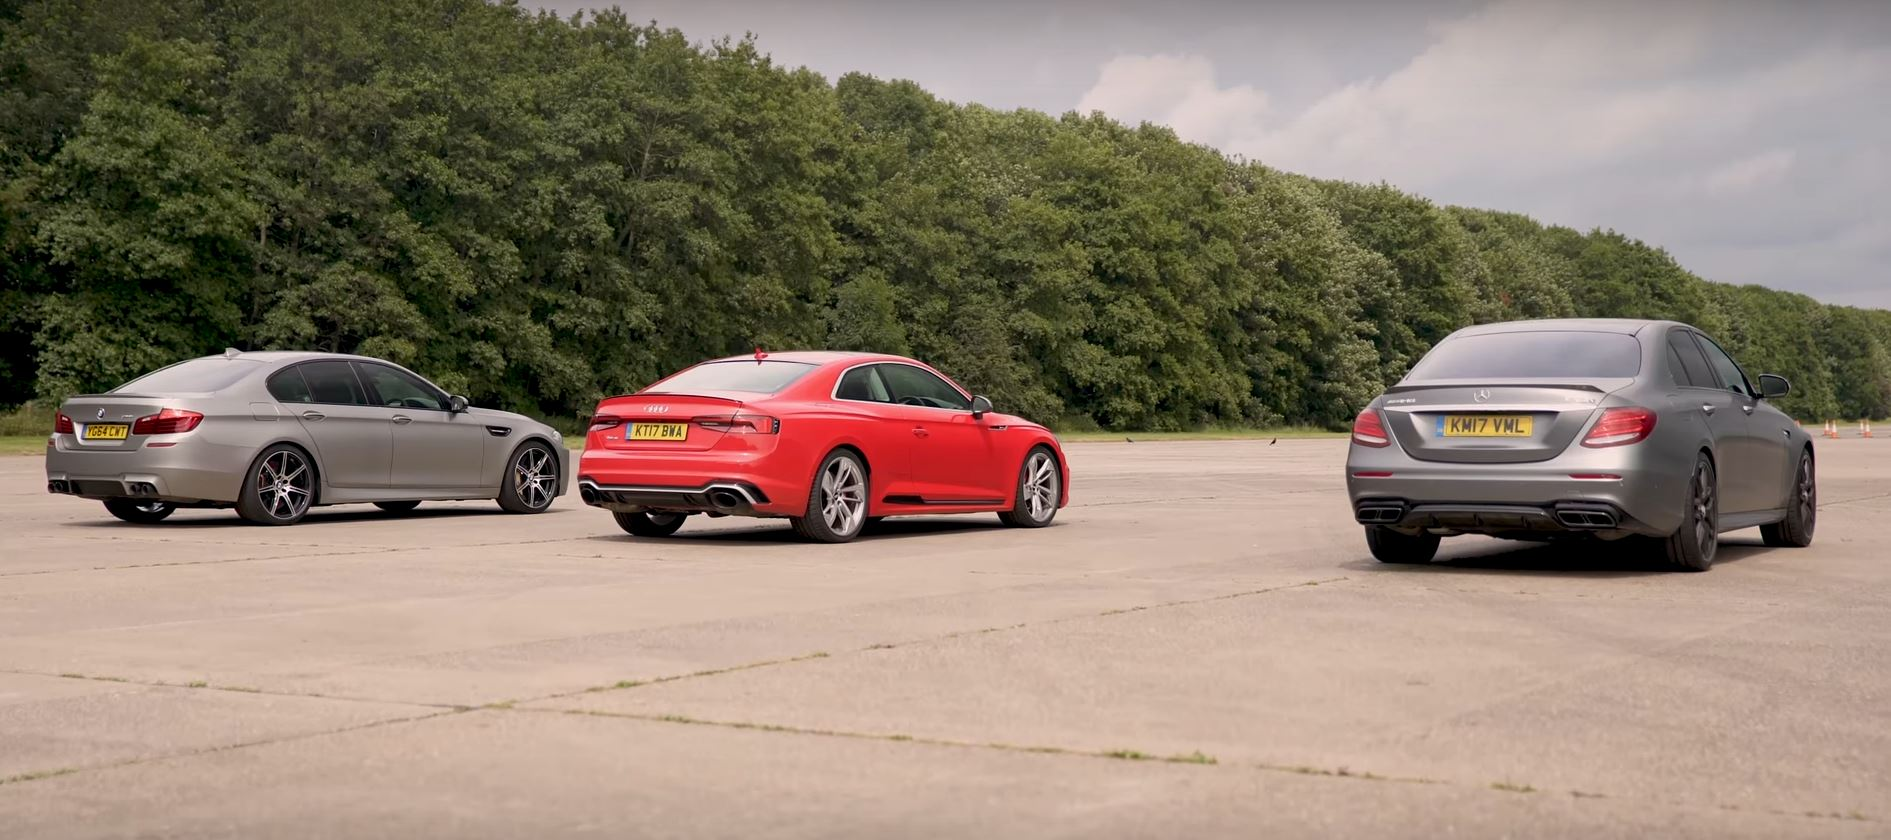 Drag Race: Audi RS5 Is Faster Than the Old M5, But the E63 S Is King ...